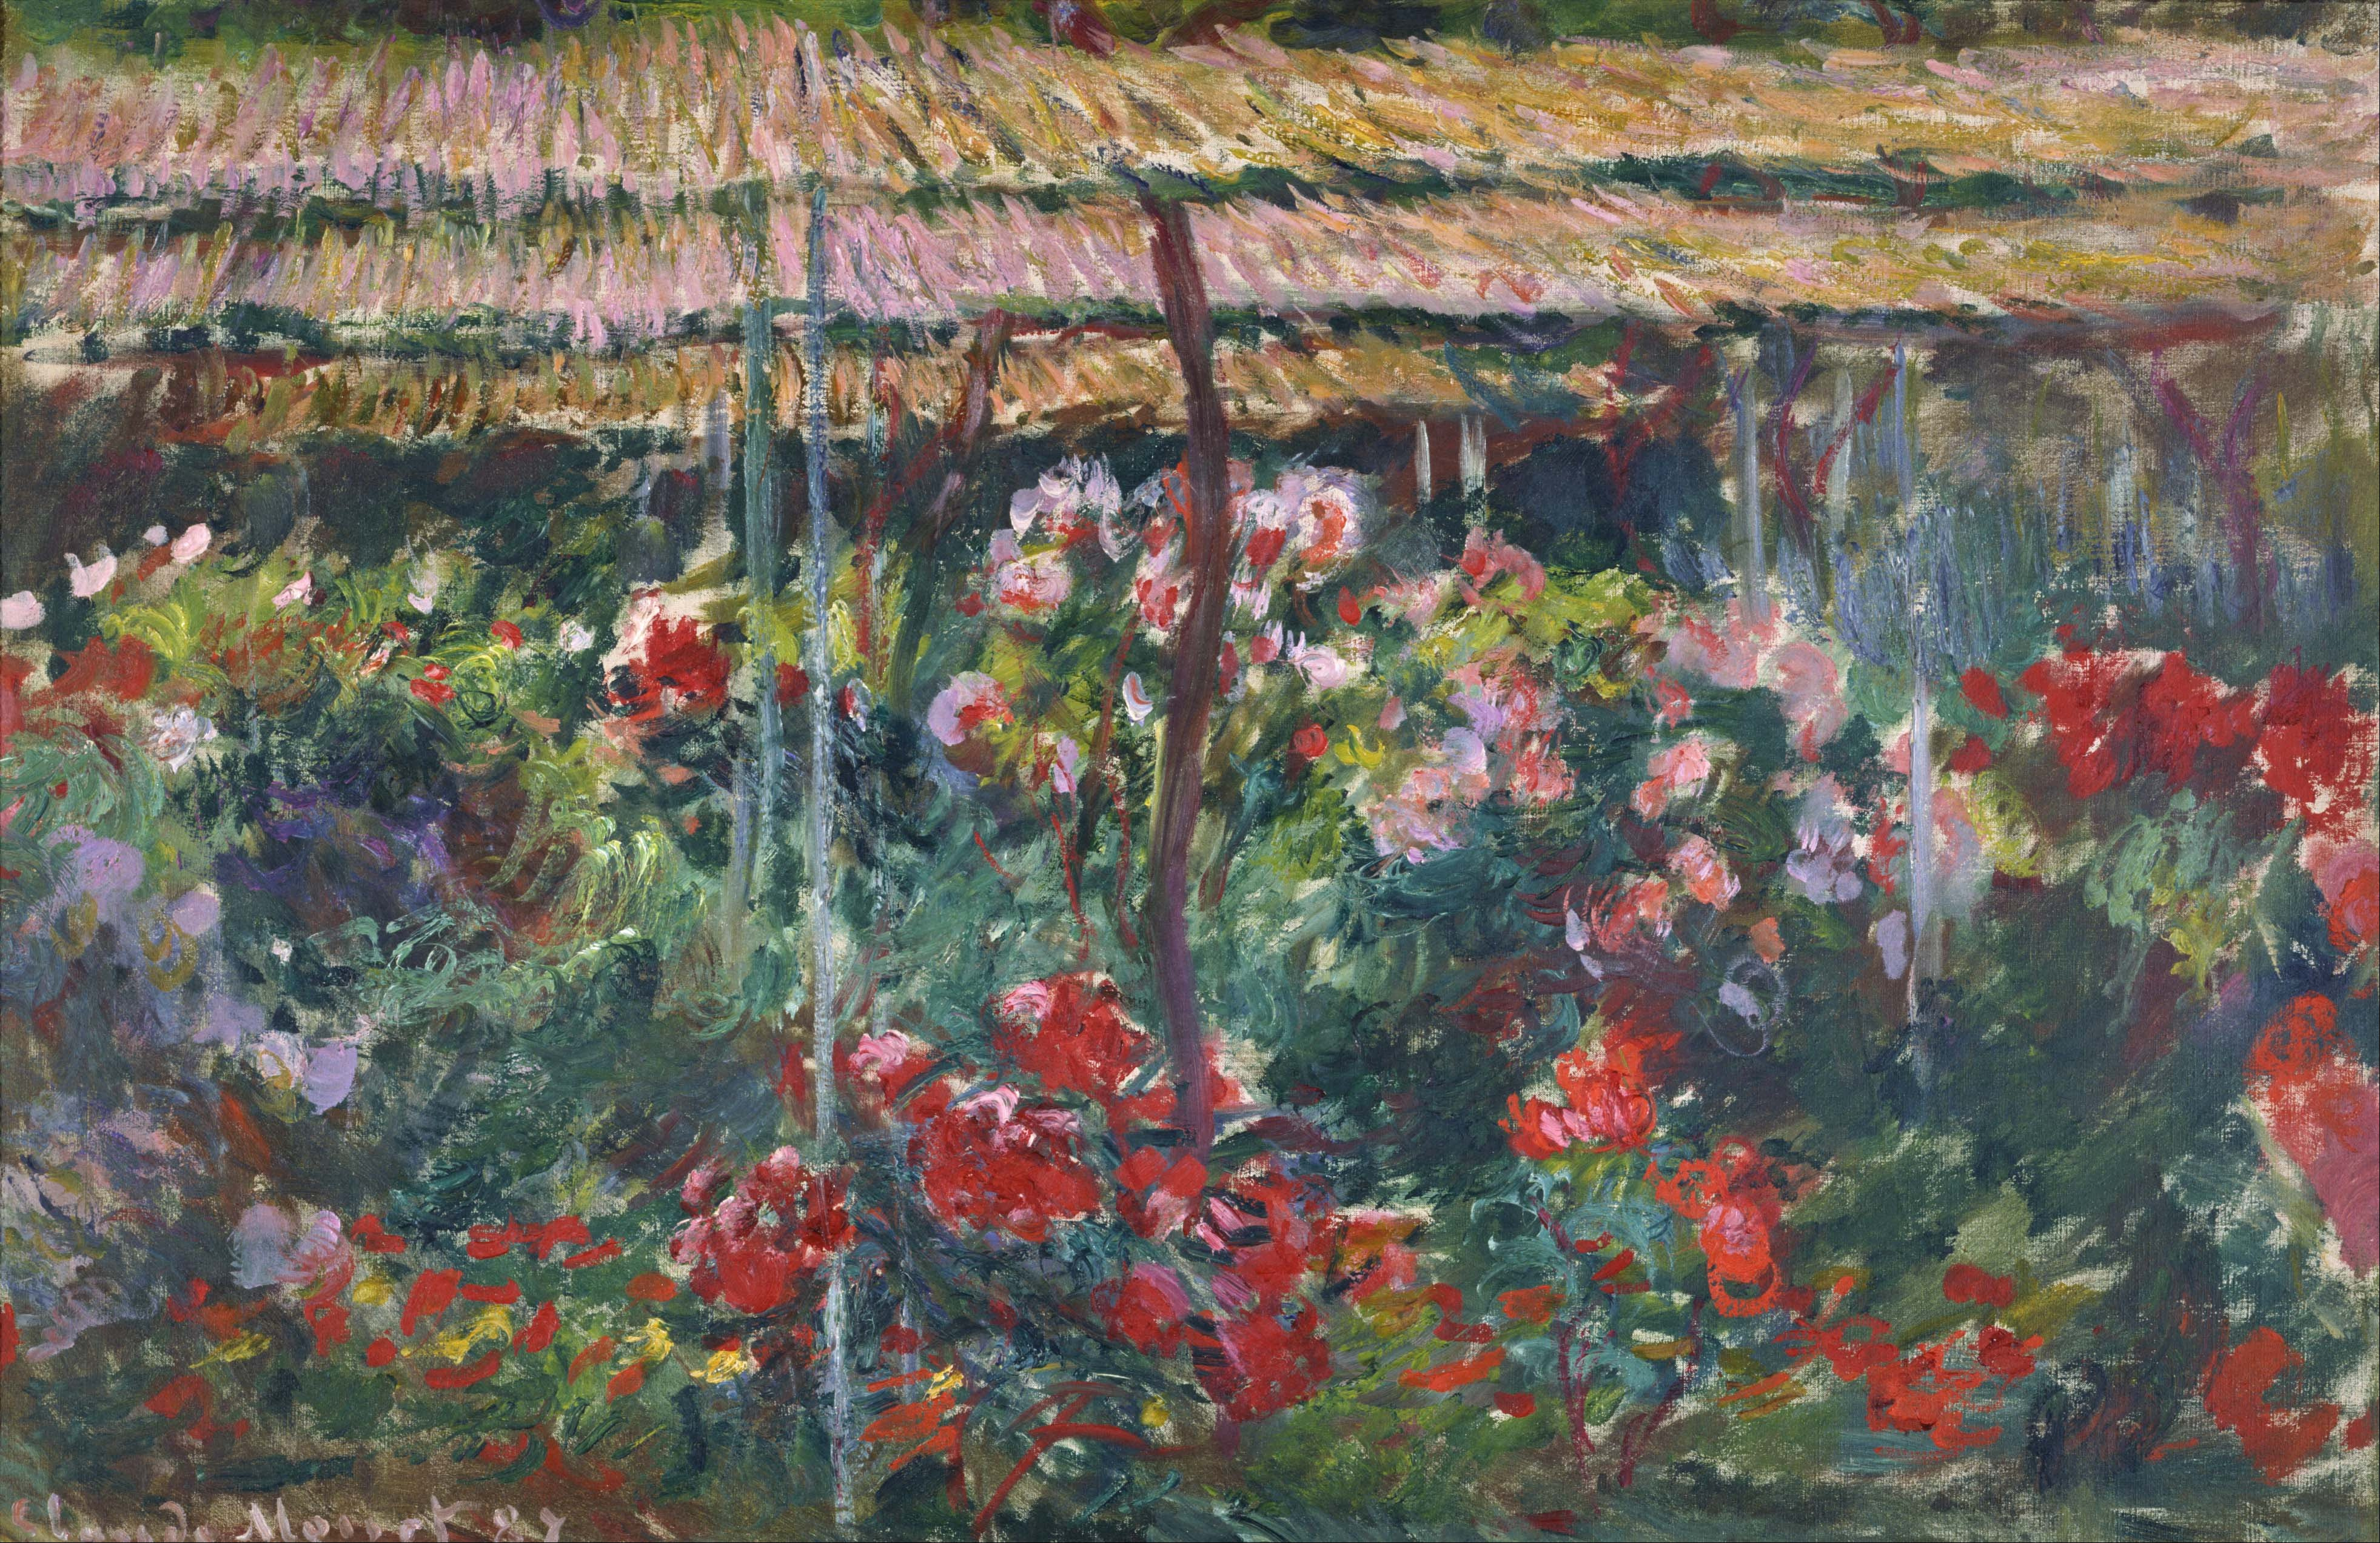 https://upload.wikimedia.org/wikipedia/commons/2/25/Claude_Monet_-_Peony_Garden_-_Google_Art_Project.jpg